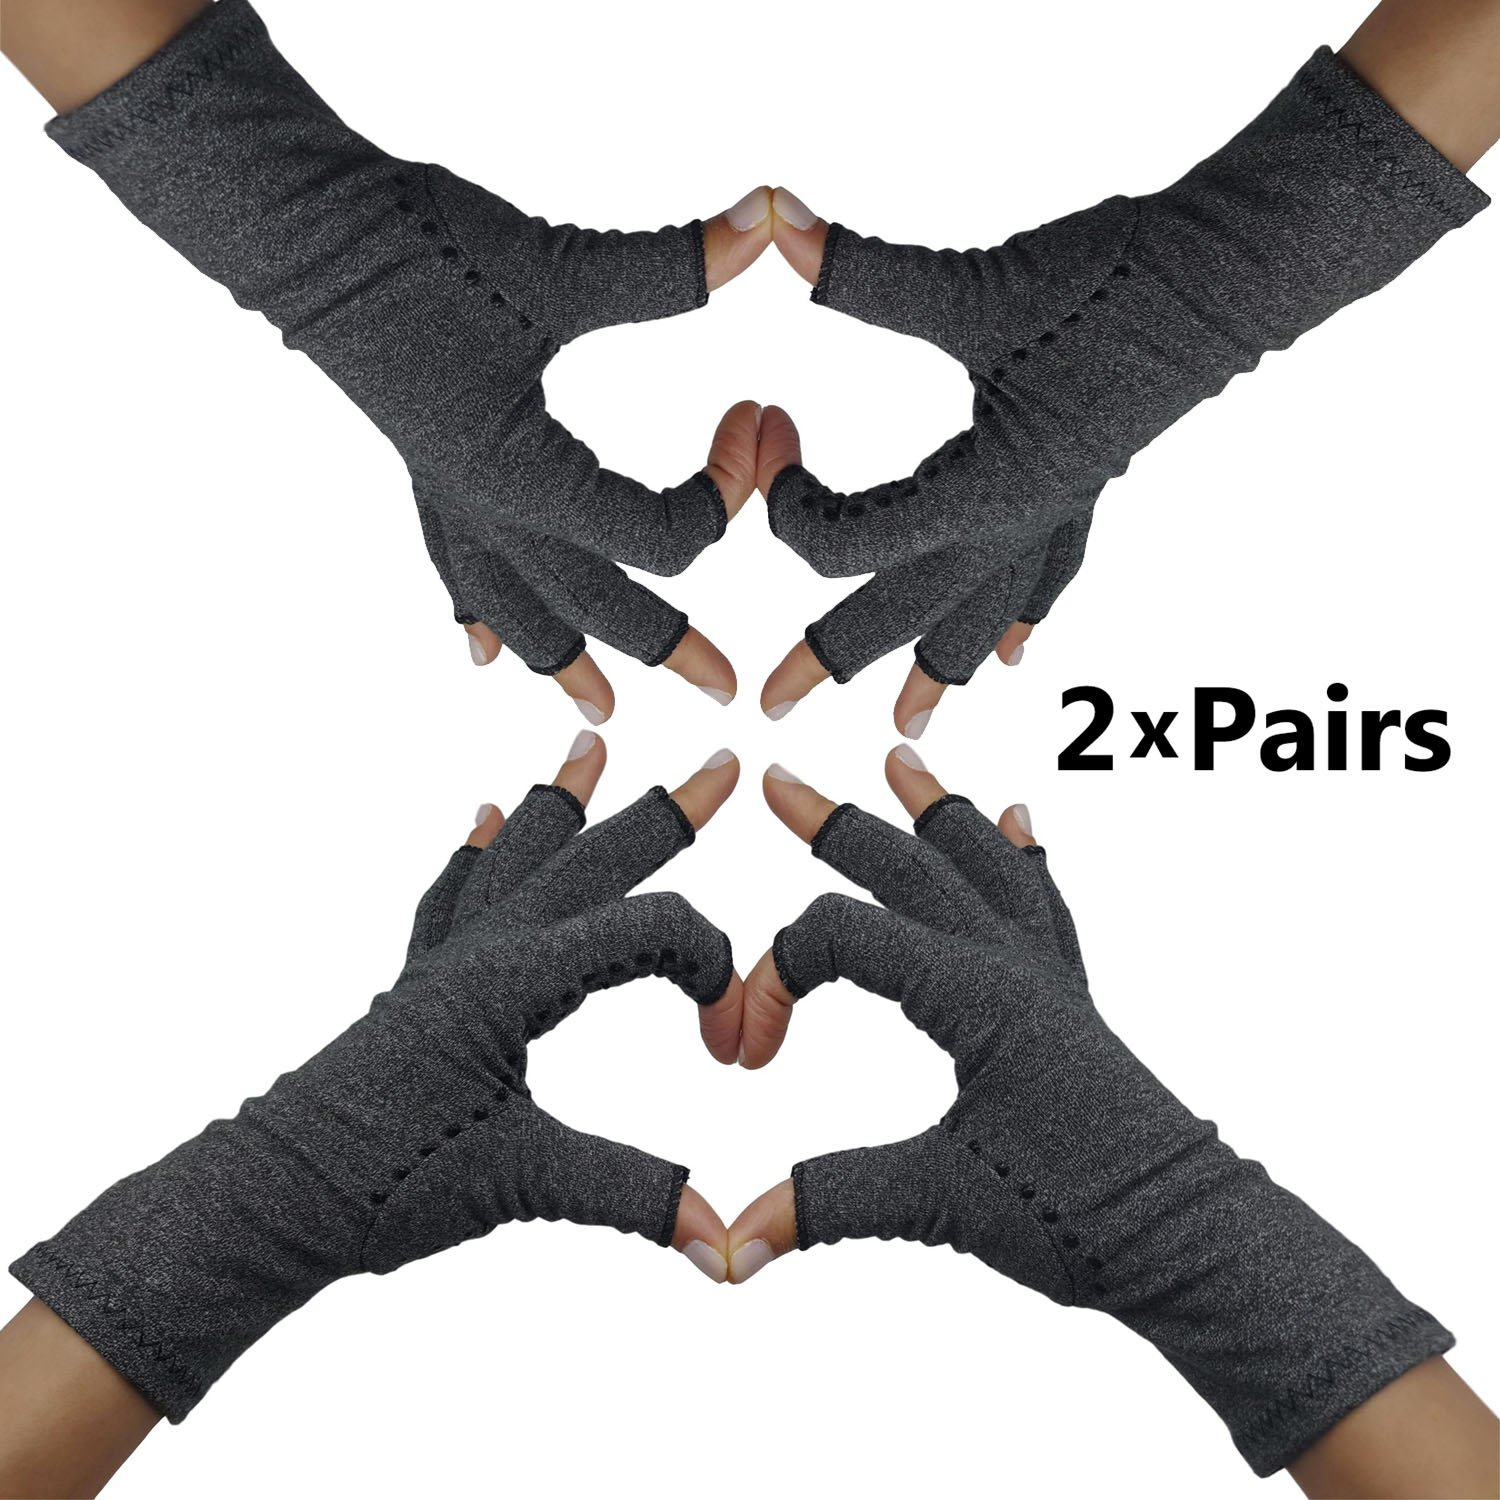 Fingerless Arthritis Compression Gloves - Arthritis Gloves to Help Swollen Hands & Fingers. Rheumatoid Joints & Carpal Tunnel Pain Relief, Fits Women & Men. Warms Knuckles and Supports Wrists (Large)